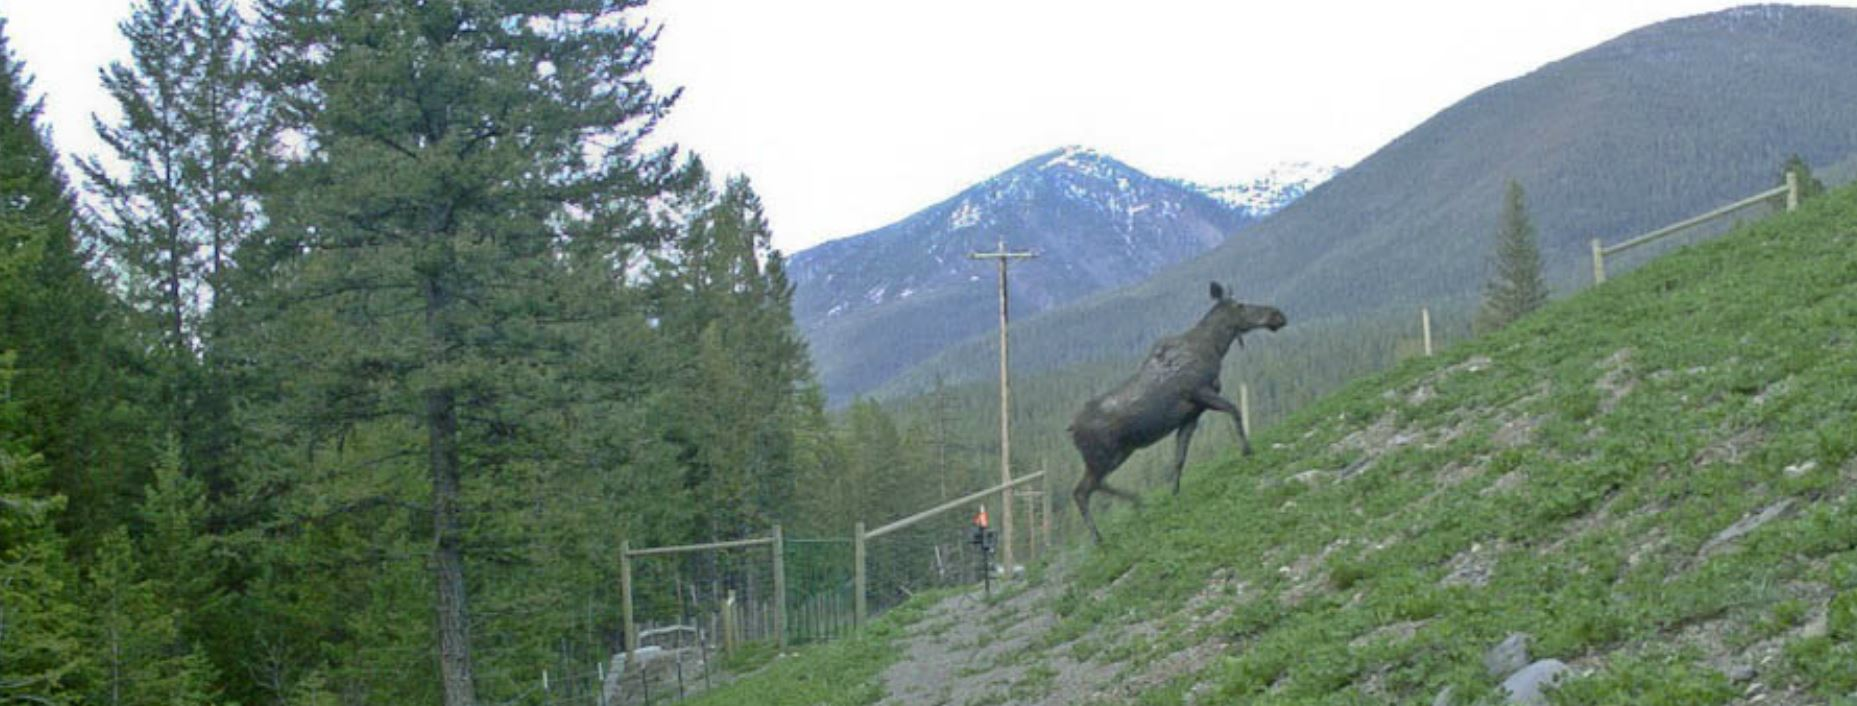 A moose being encourage to the overpass through installed fencing (photo courtesy of Peoples Way Wildlife Crossing )